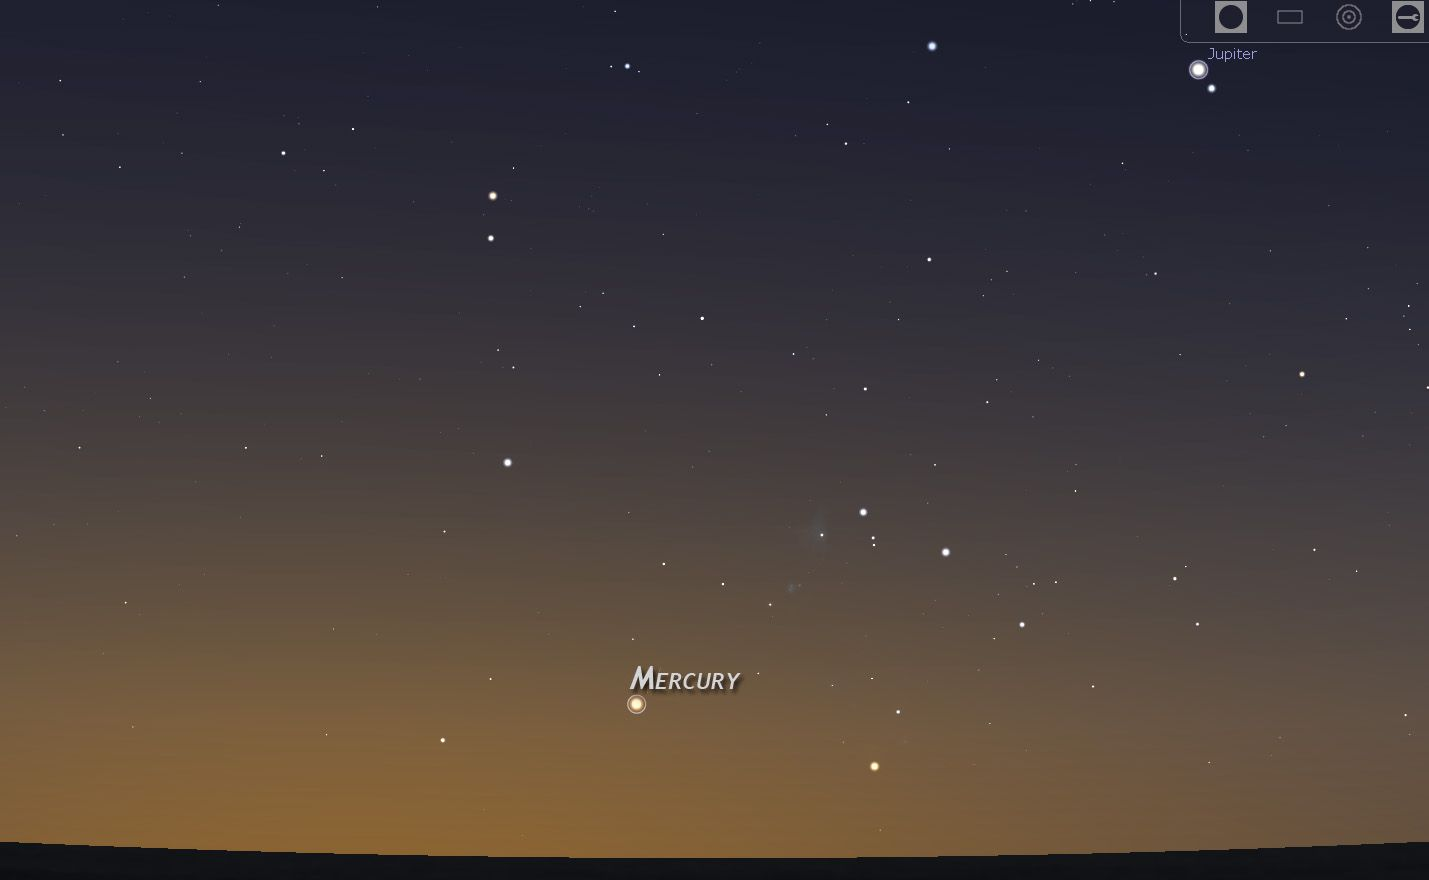 A sample star chart for finding Mercury.